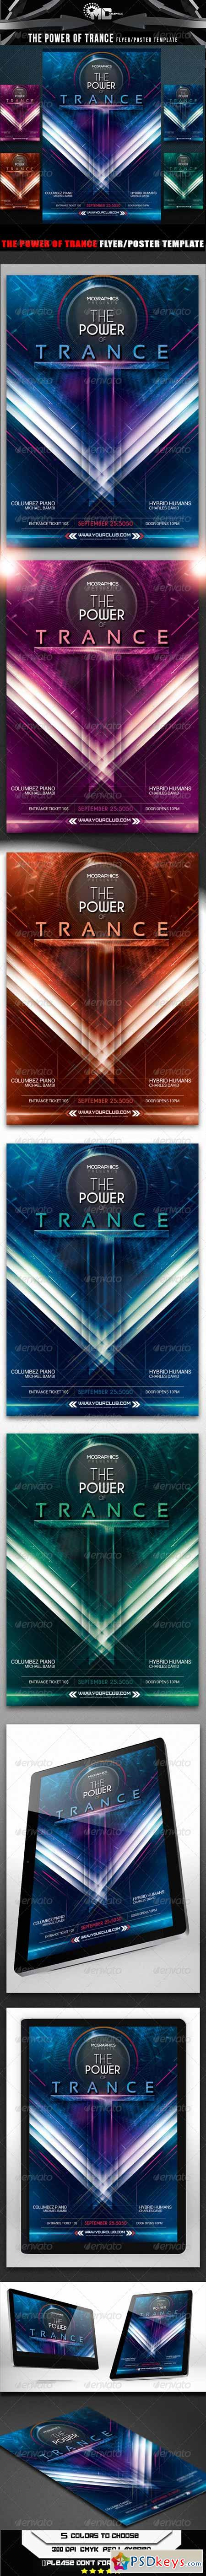 The Power of Trance Flyer Poster Template 8545090